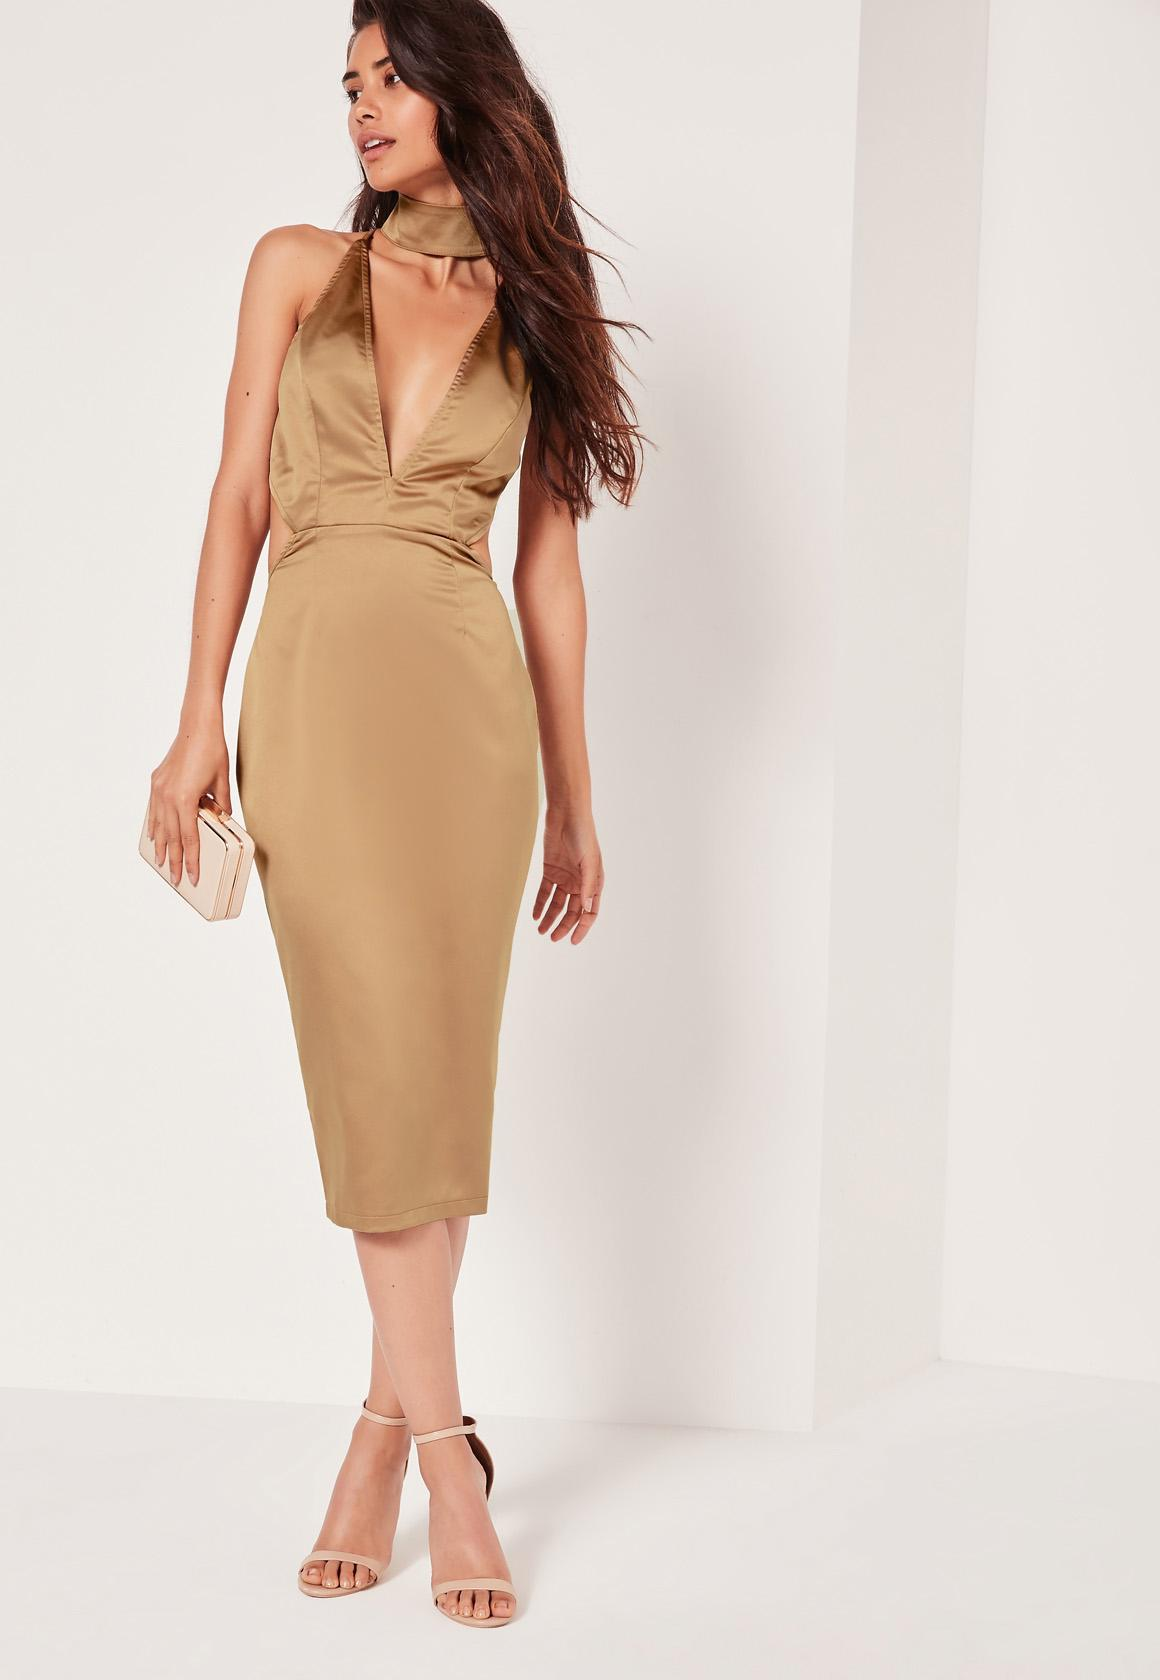 Lyst - Missguided Silky Choker Detail Cut Out Midi Dress Gold in ... f07a60d59